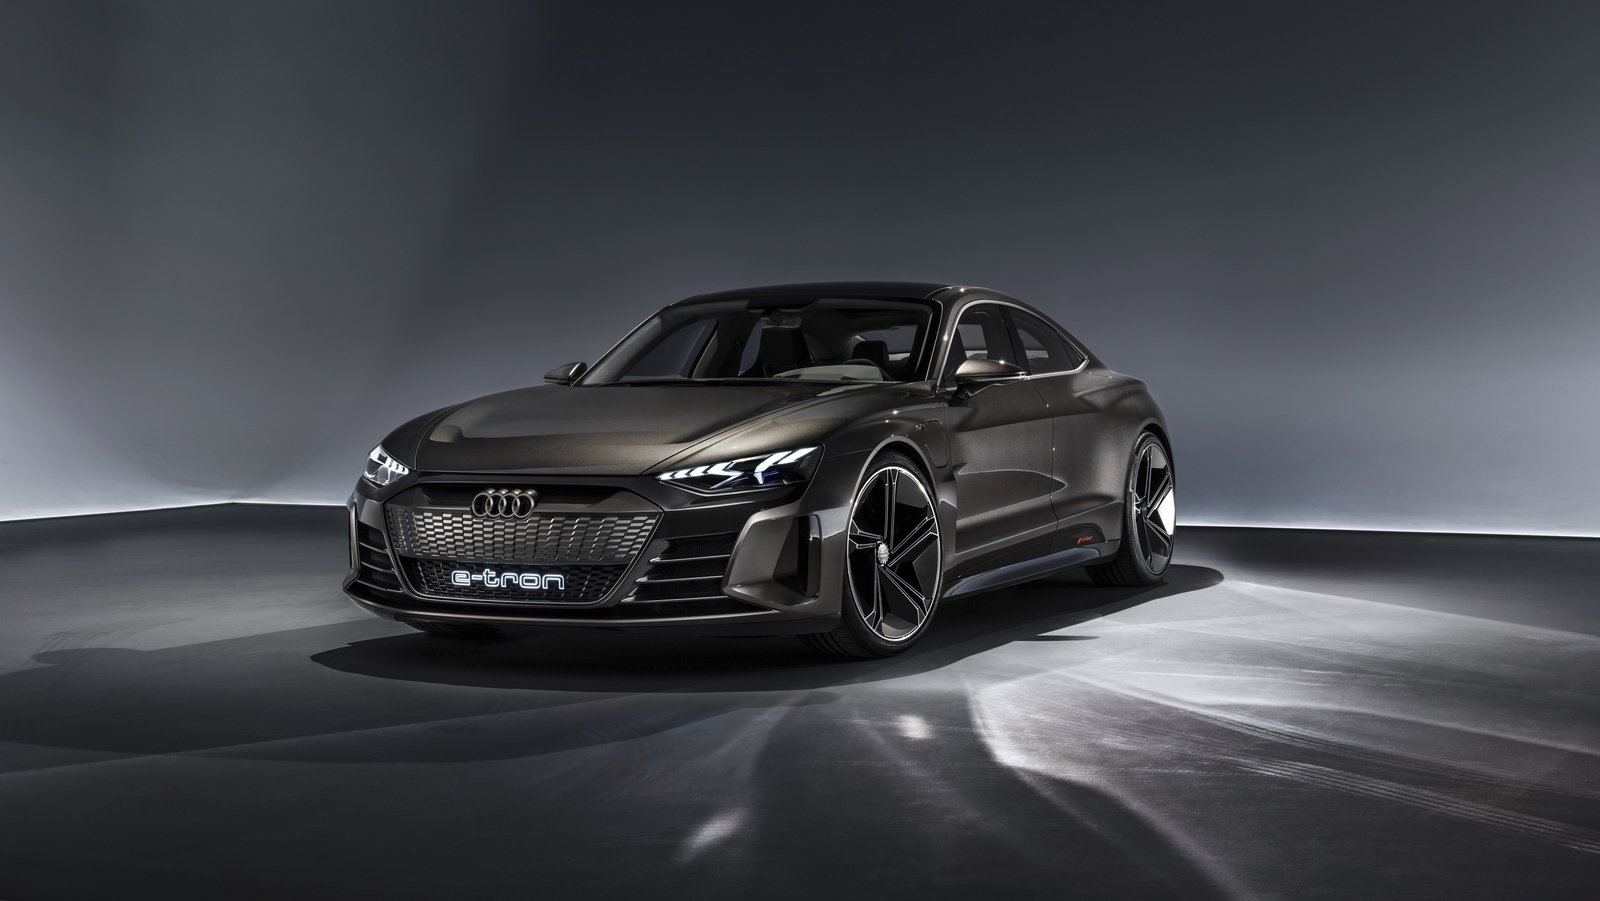 The Audi E Tron Gt Concept S Appearance In Avengers 4